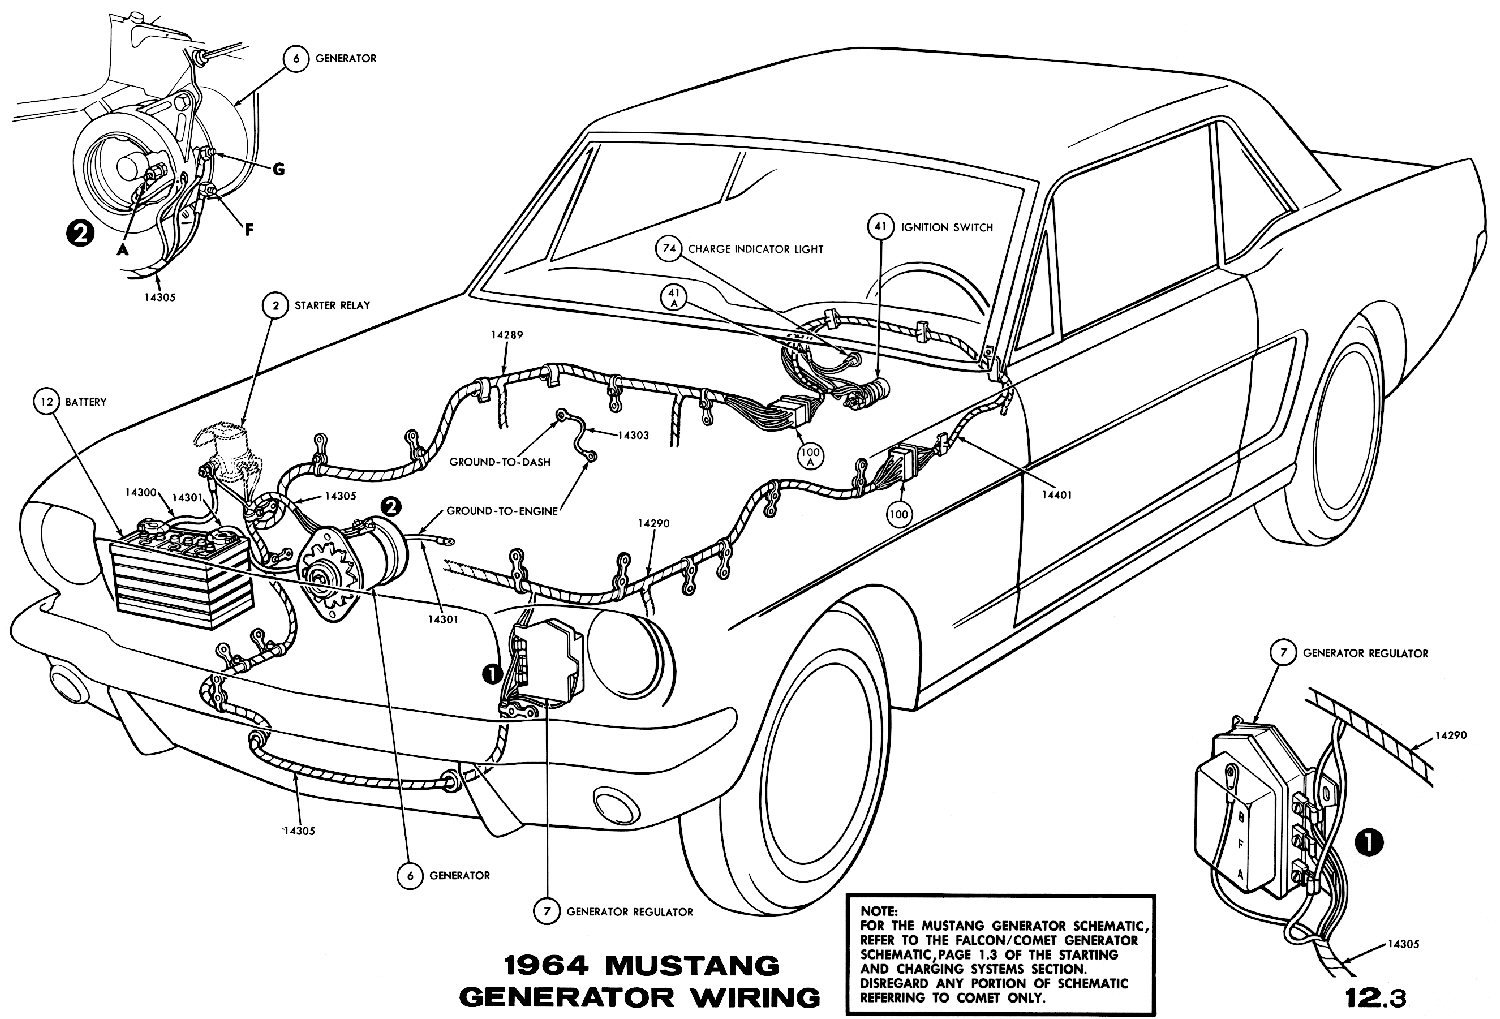 1964f 1964 mustang wiring diagrams average joe restoration 1966 mustang wiring diagrams at n-0.co